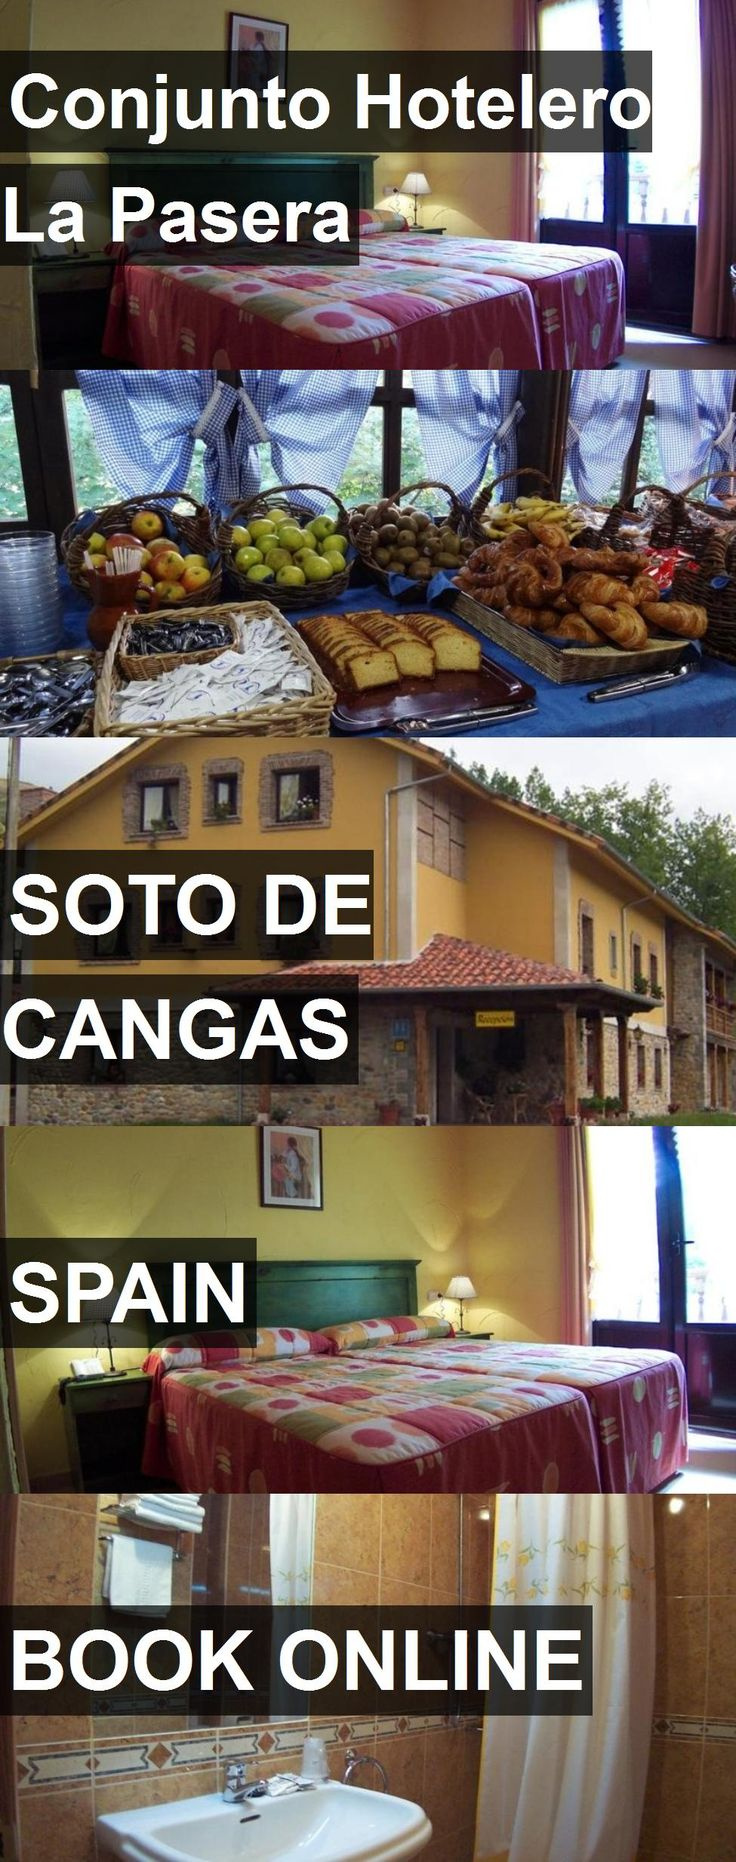 Conjunto Hotelero La Pasera in Soto de Cangas, Spain. For more information, photos, reviews and best prices please follow the link. #Spain #SotodeCangas #travel #vacation #hotel